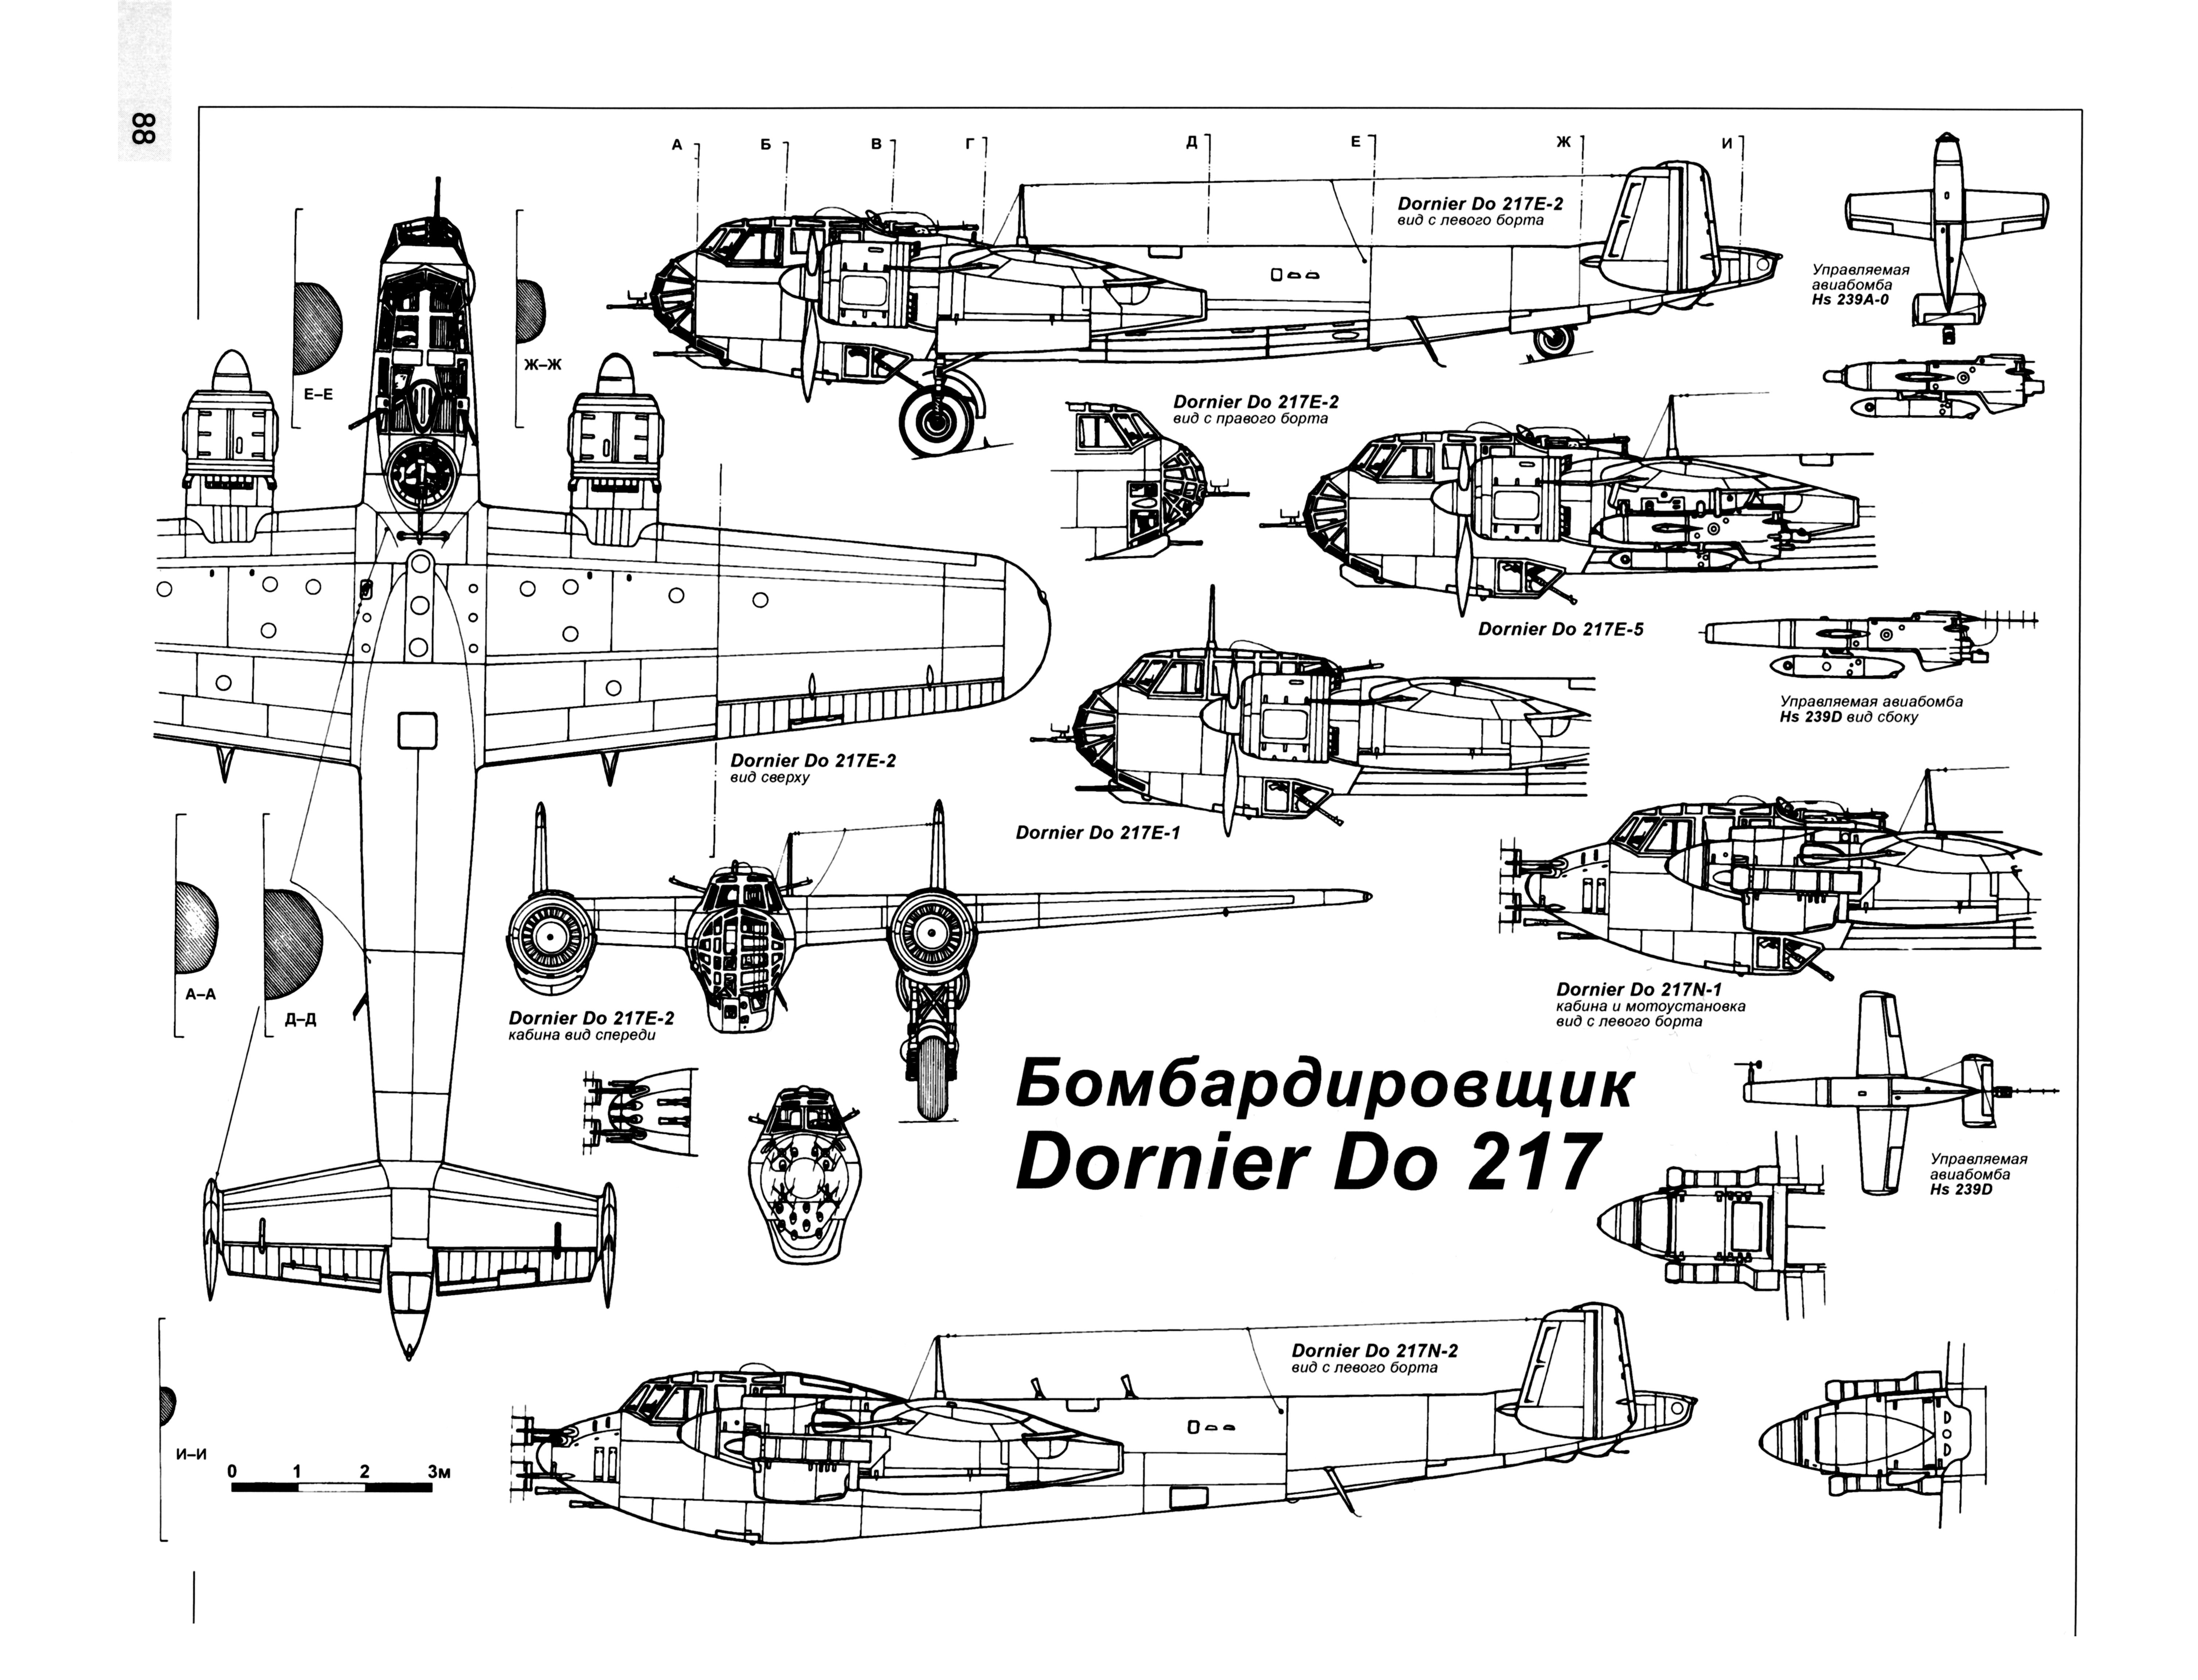 Dornier Do 217 blueprint